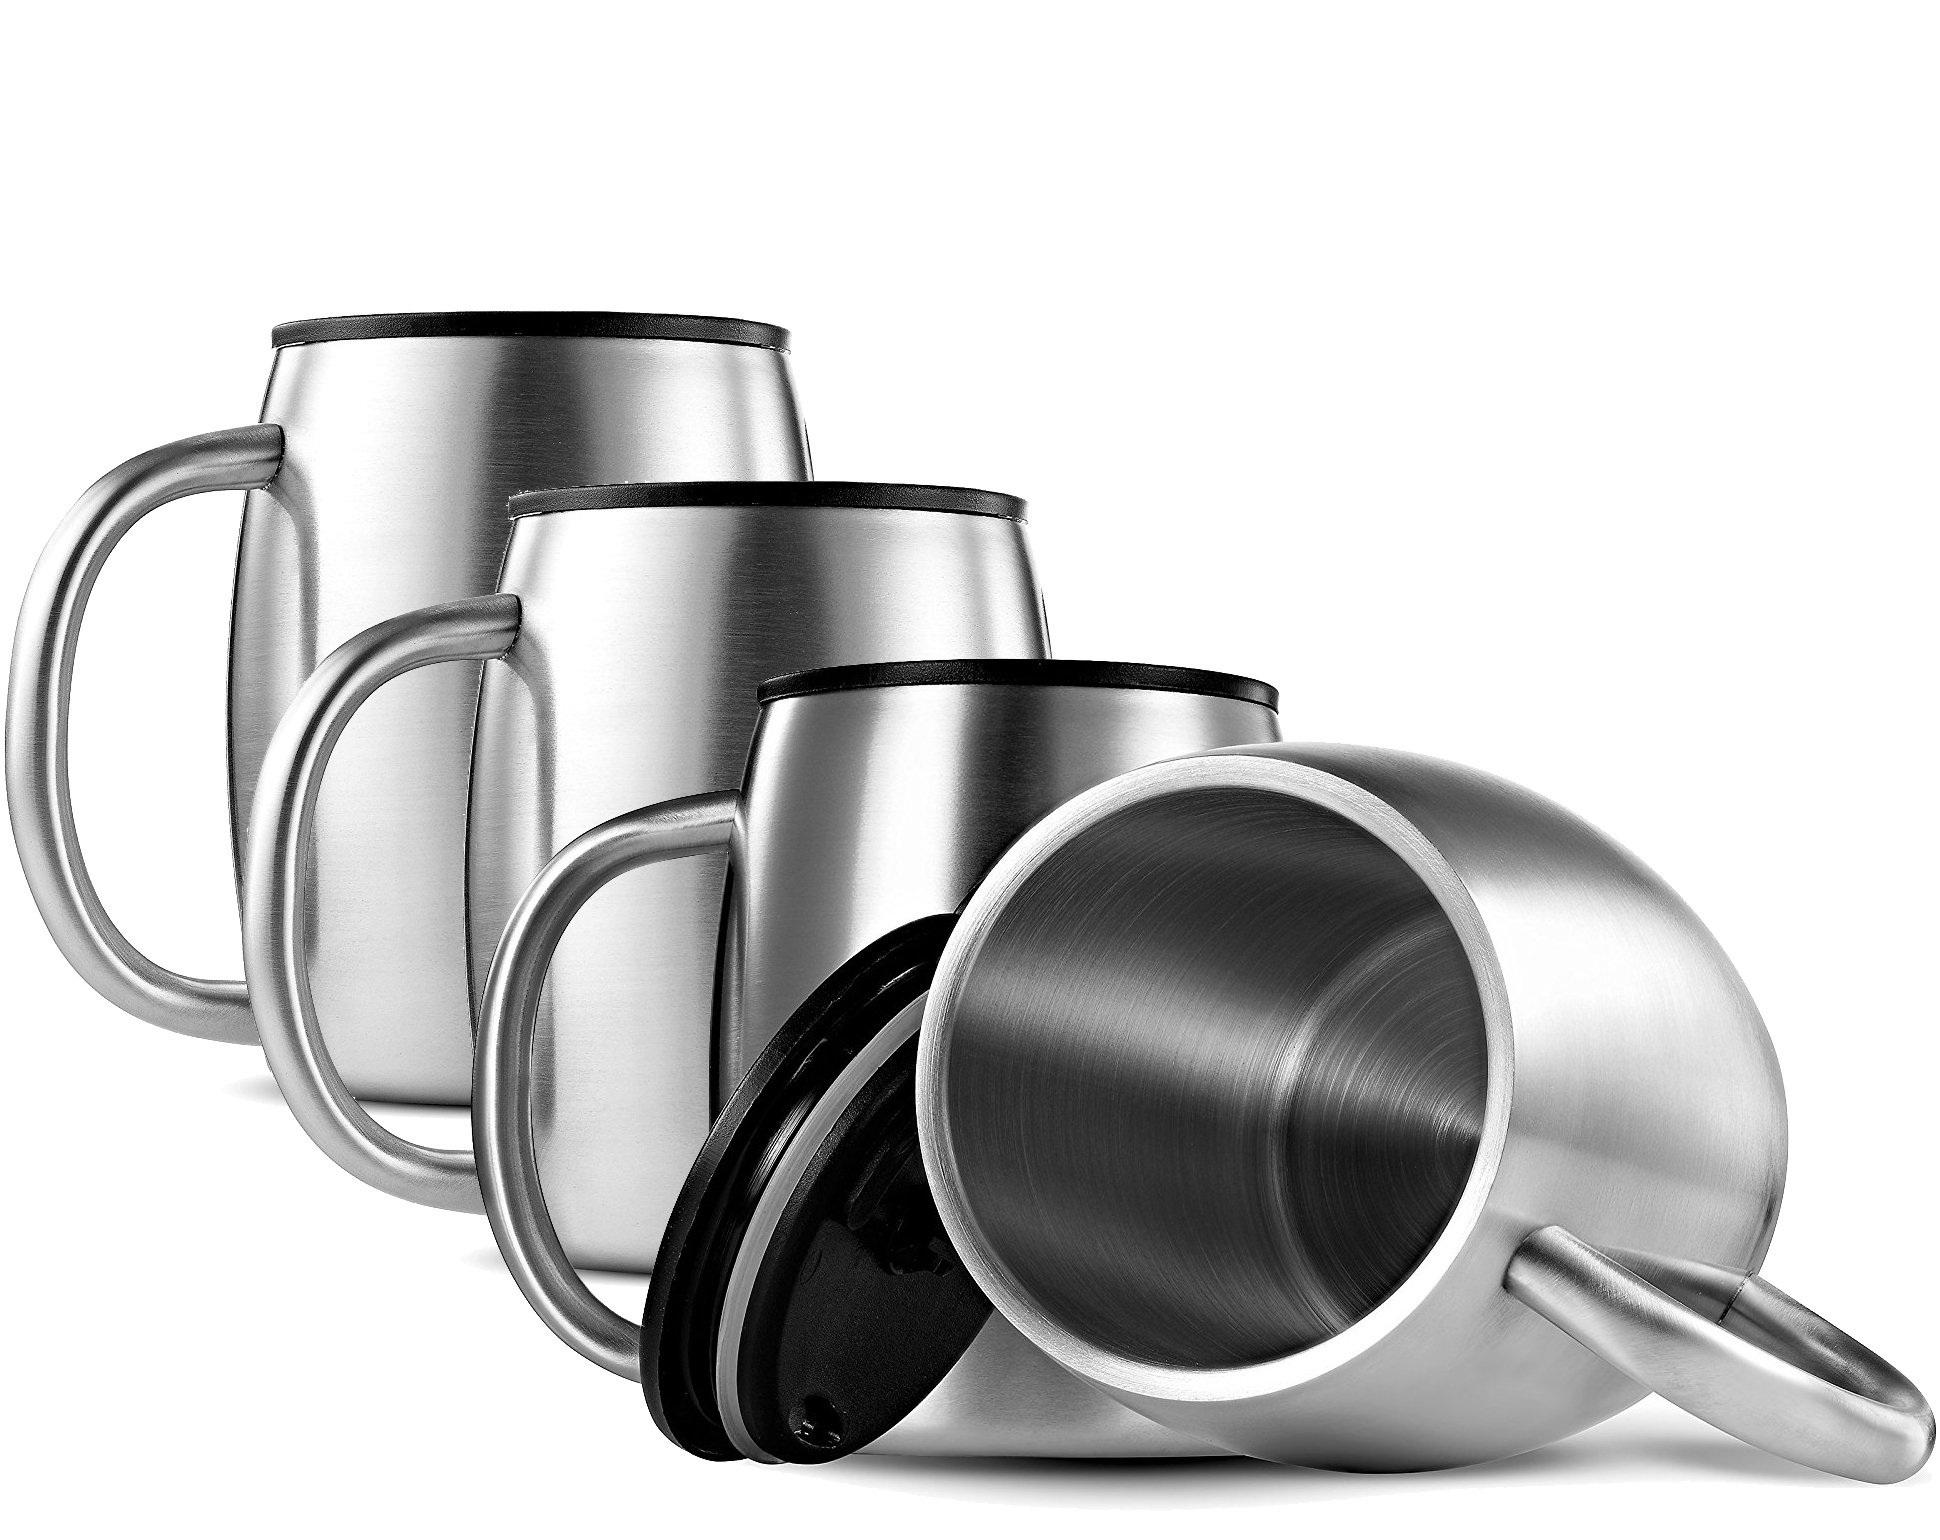 FineDine Double Wall 18/8 Stainless Steel Coffee Mugs with Spill Resistant Lids Insulated Coffee Travel Mug with Comfortable Handle for Hot & Cold Drinks, Shatterproof Coffee Cups, 14 Oz. (Set of 4) by FINEDINE